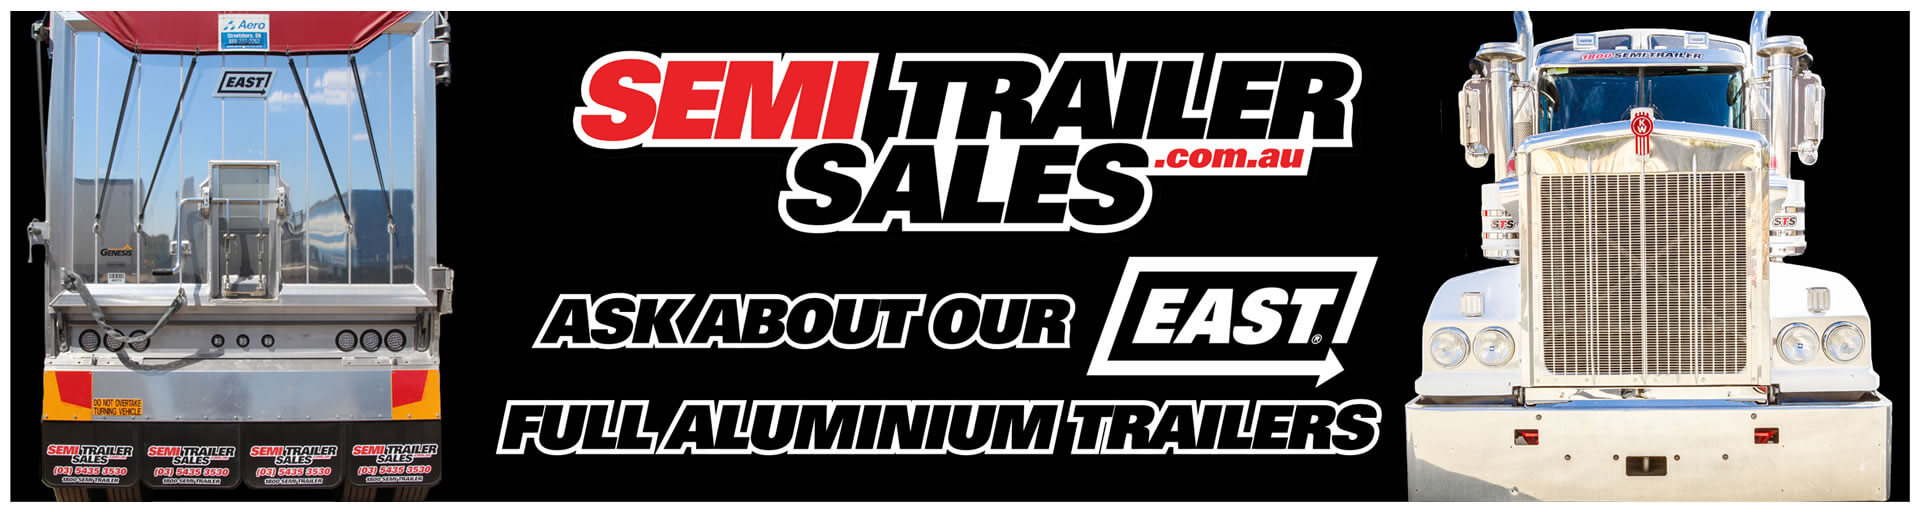 Ask about EAST Full Aluminium Trailers